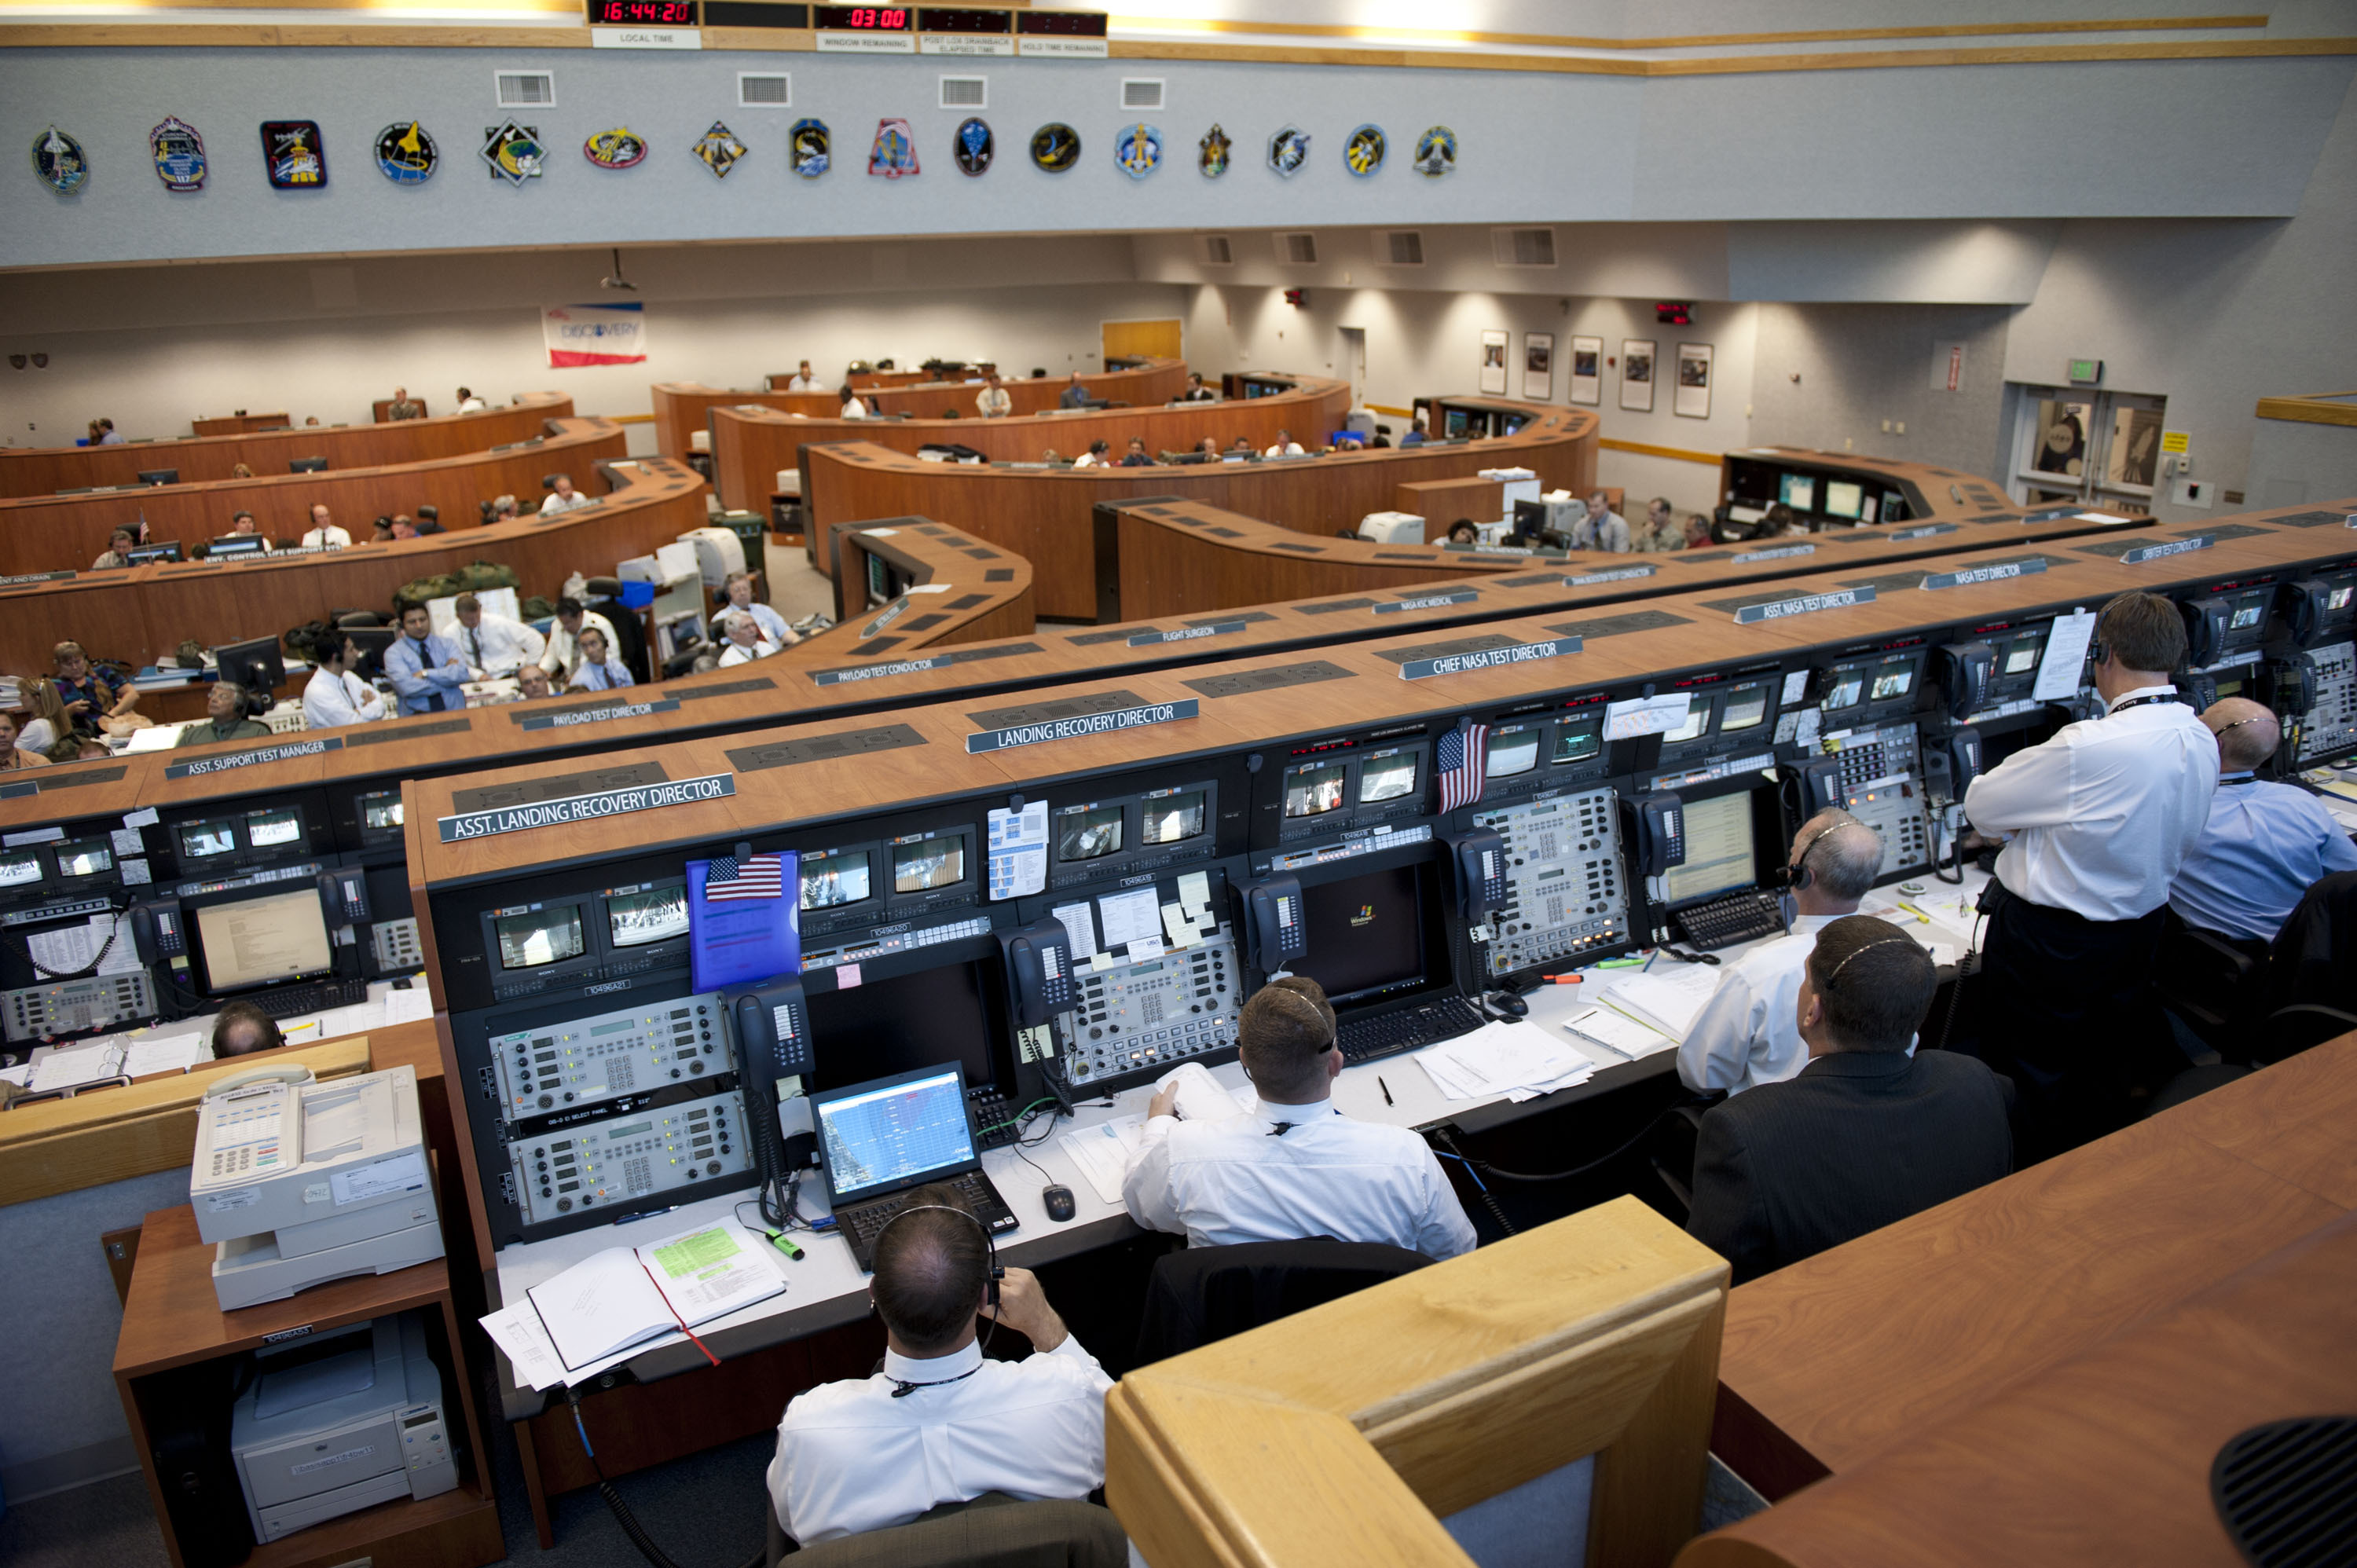 Firing Rooms Keep Launch Team Well-Connected | NASA